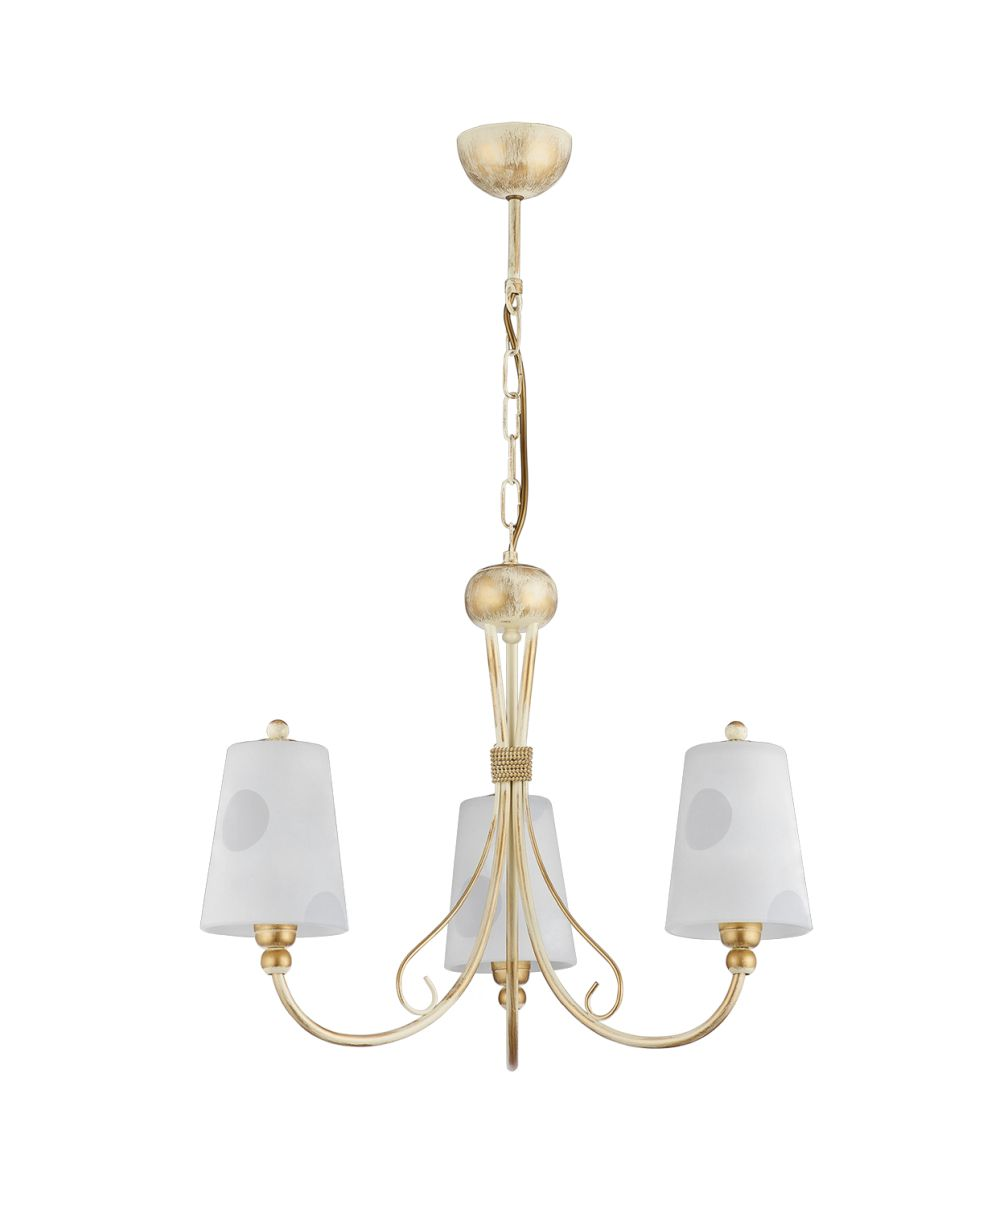 Kronleuchter in Shabby Gold Weiß Glas ENANIA Lampe